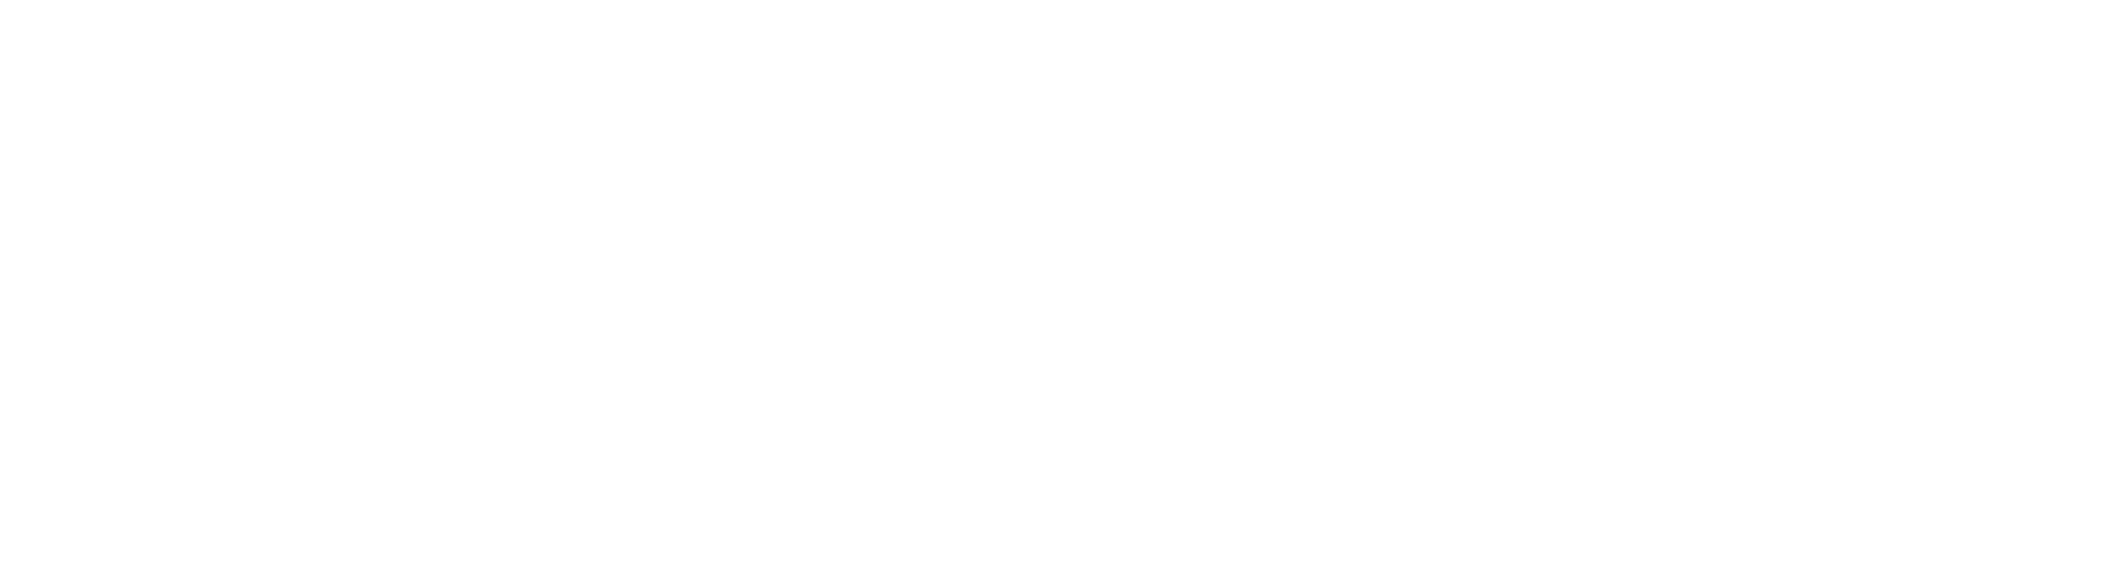 ...mest om mad